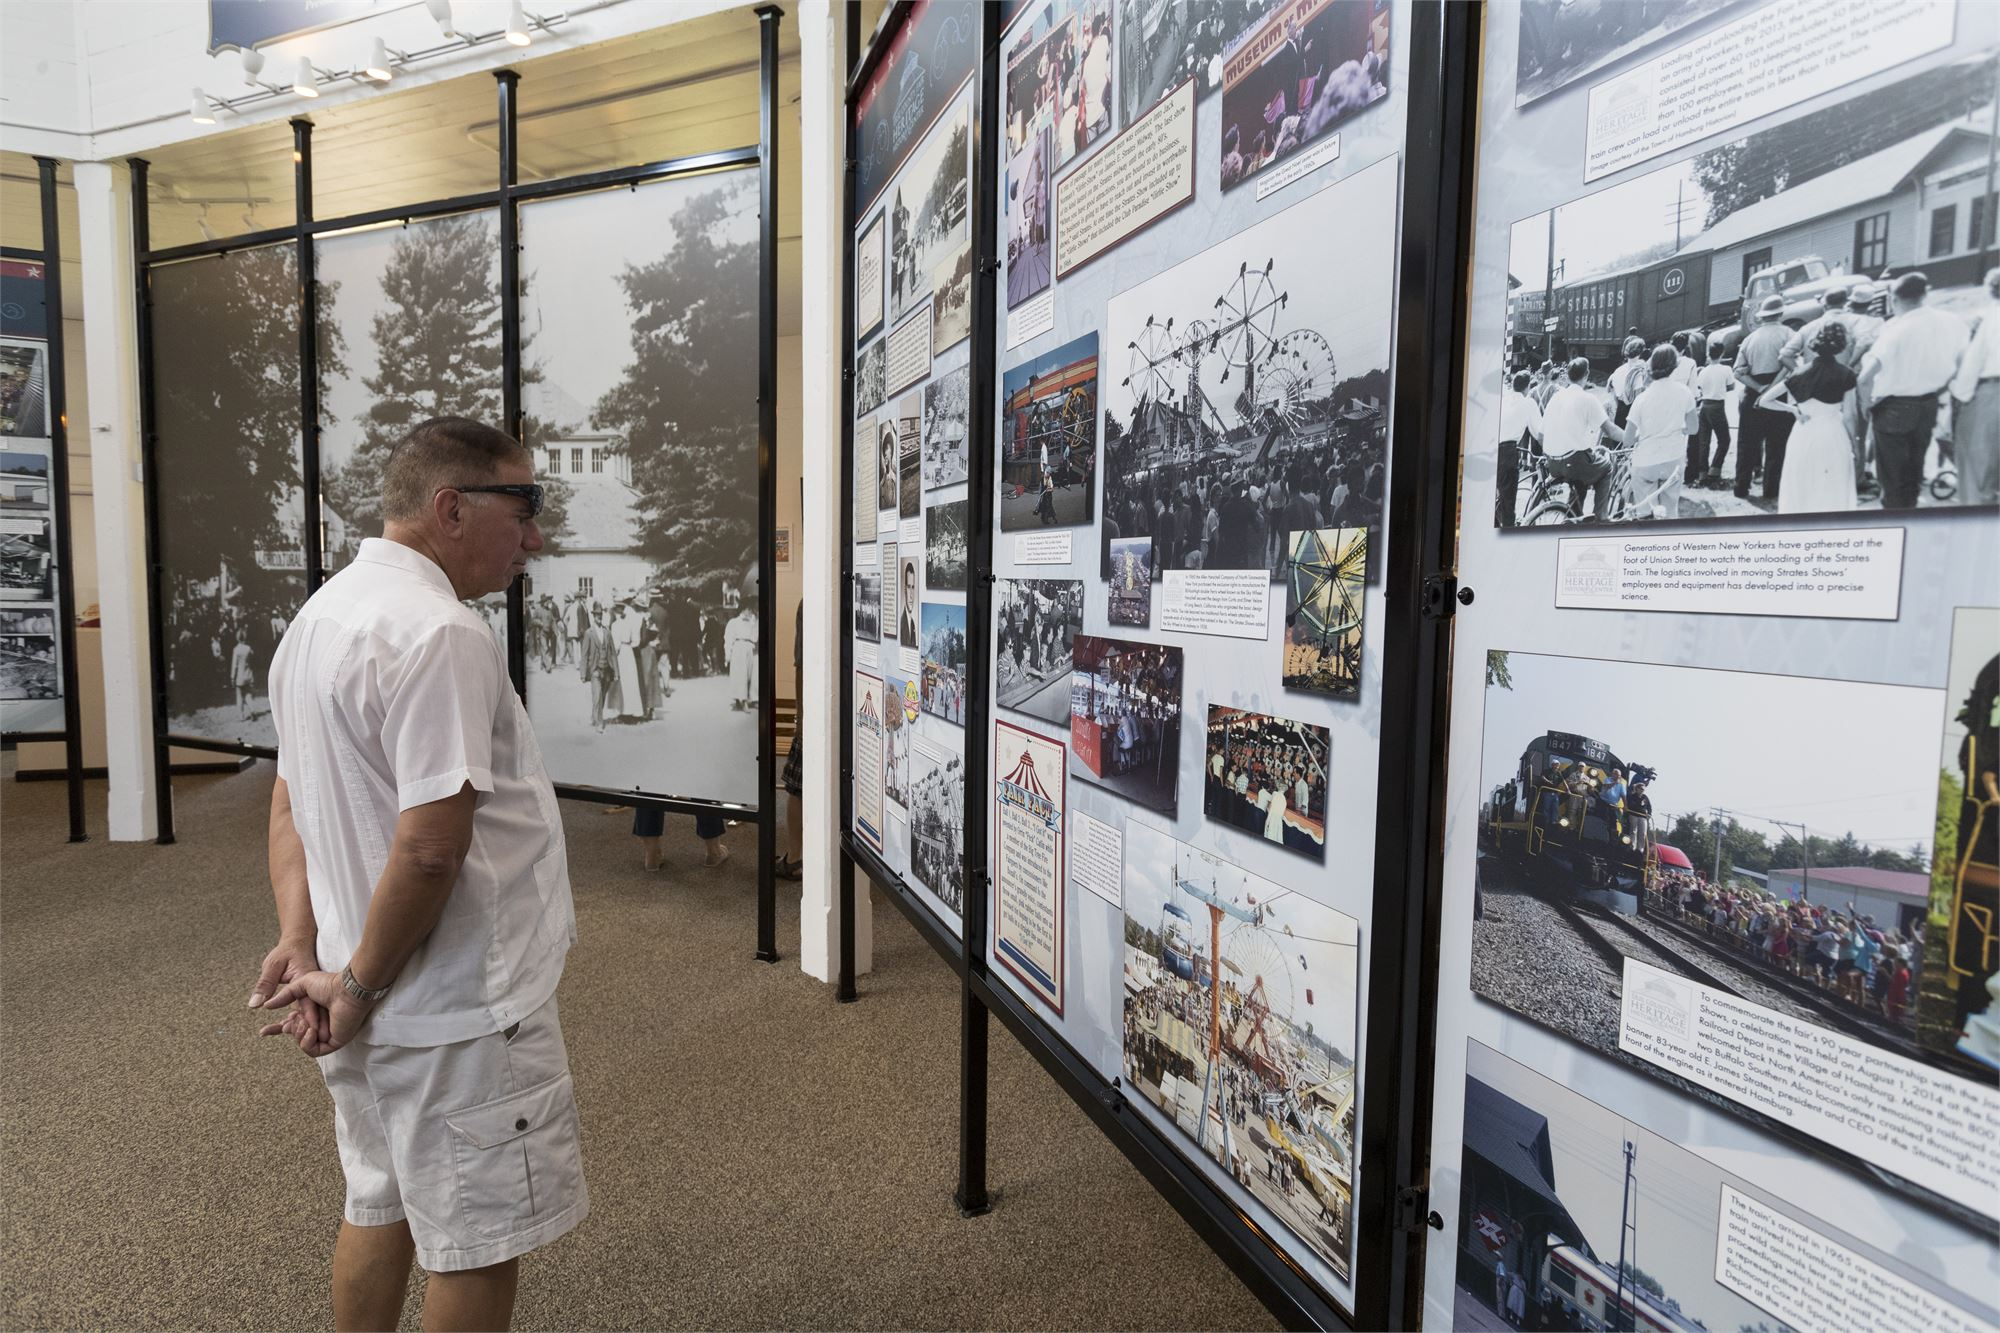 Photo of a Fairgoer looking at the informational panels inside the Heritage and History Center